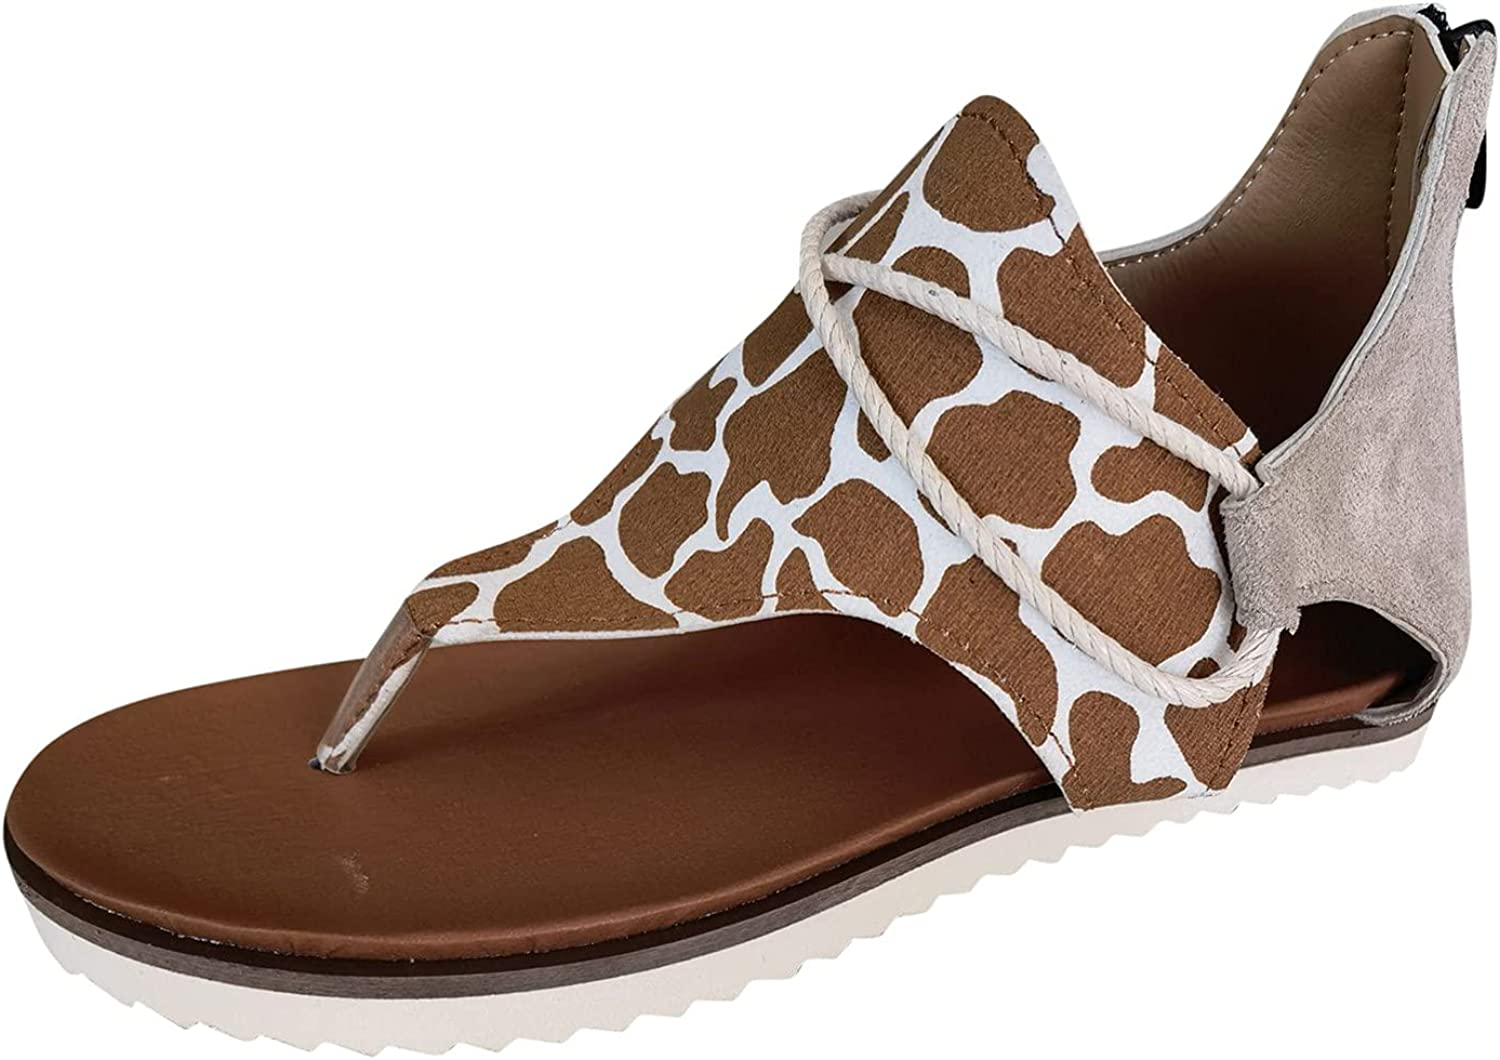 Bunion Sandals For Women Summer Leopard Chicago Mall wholesale Casual Printed Tie-Dye